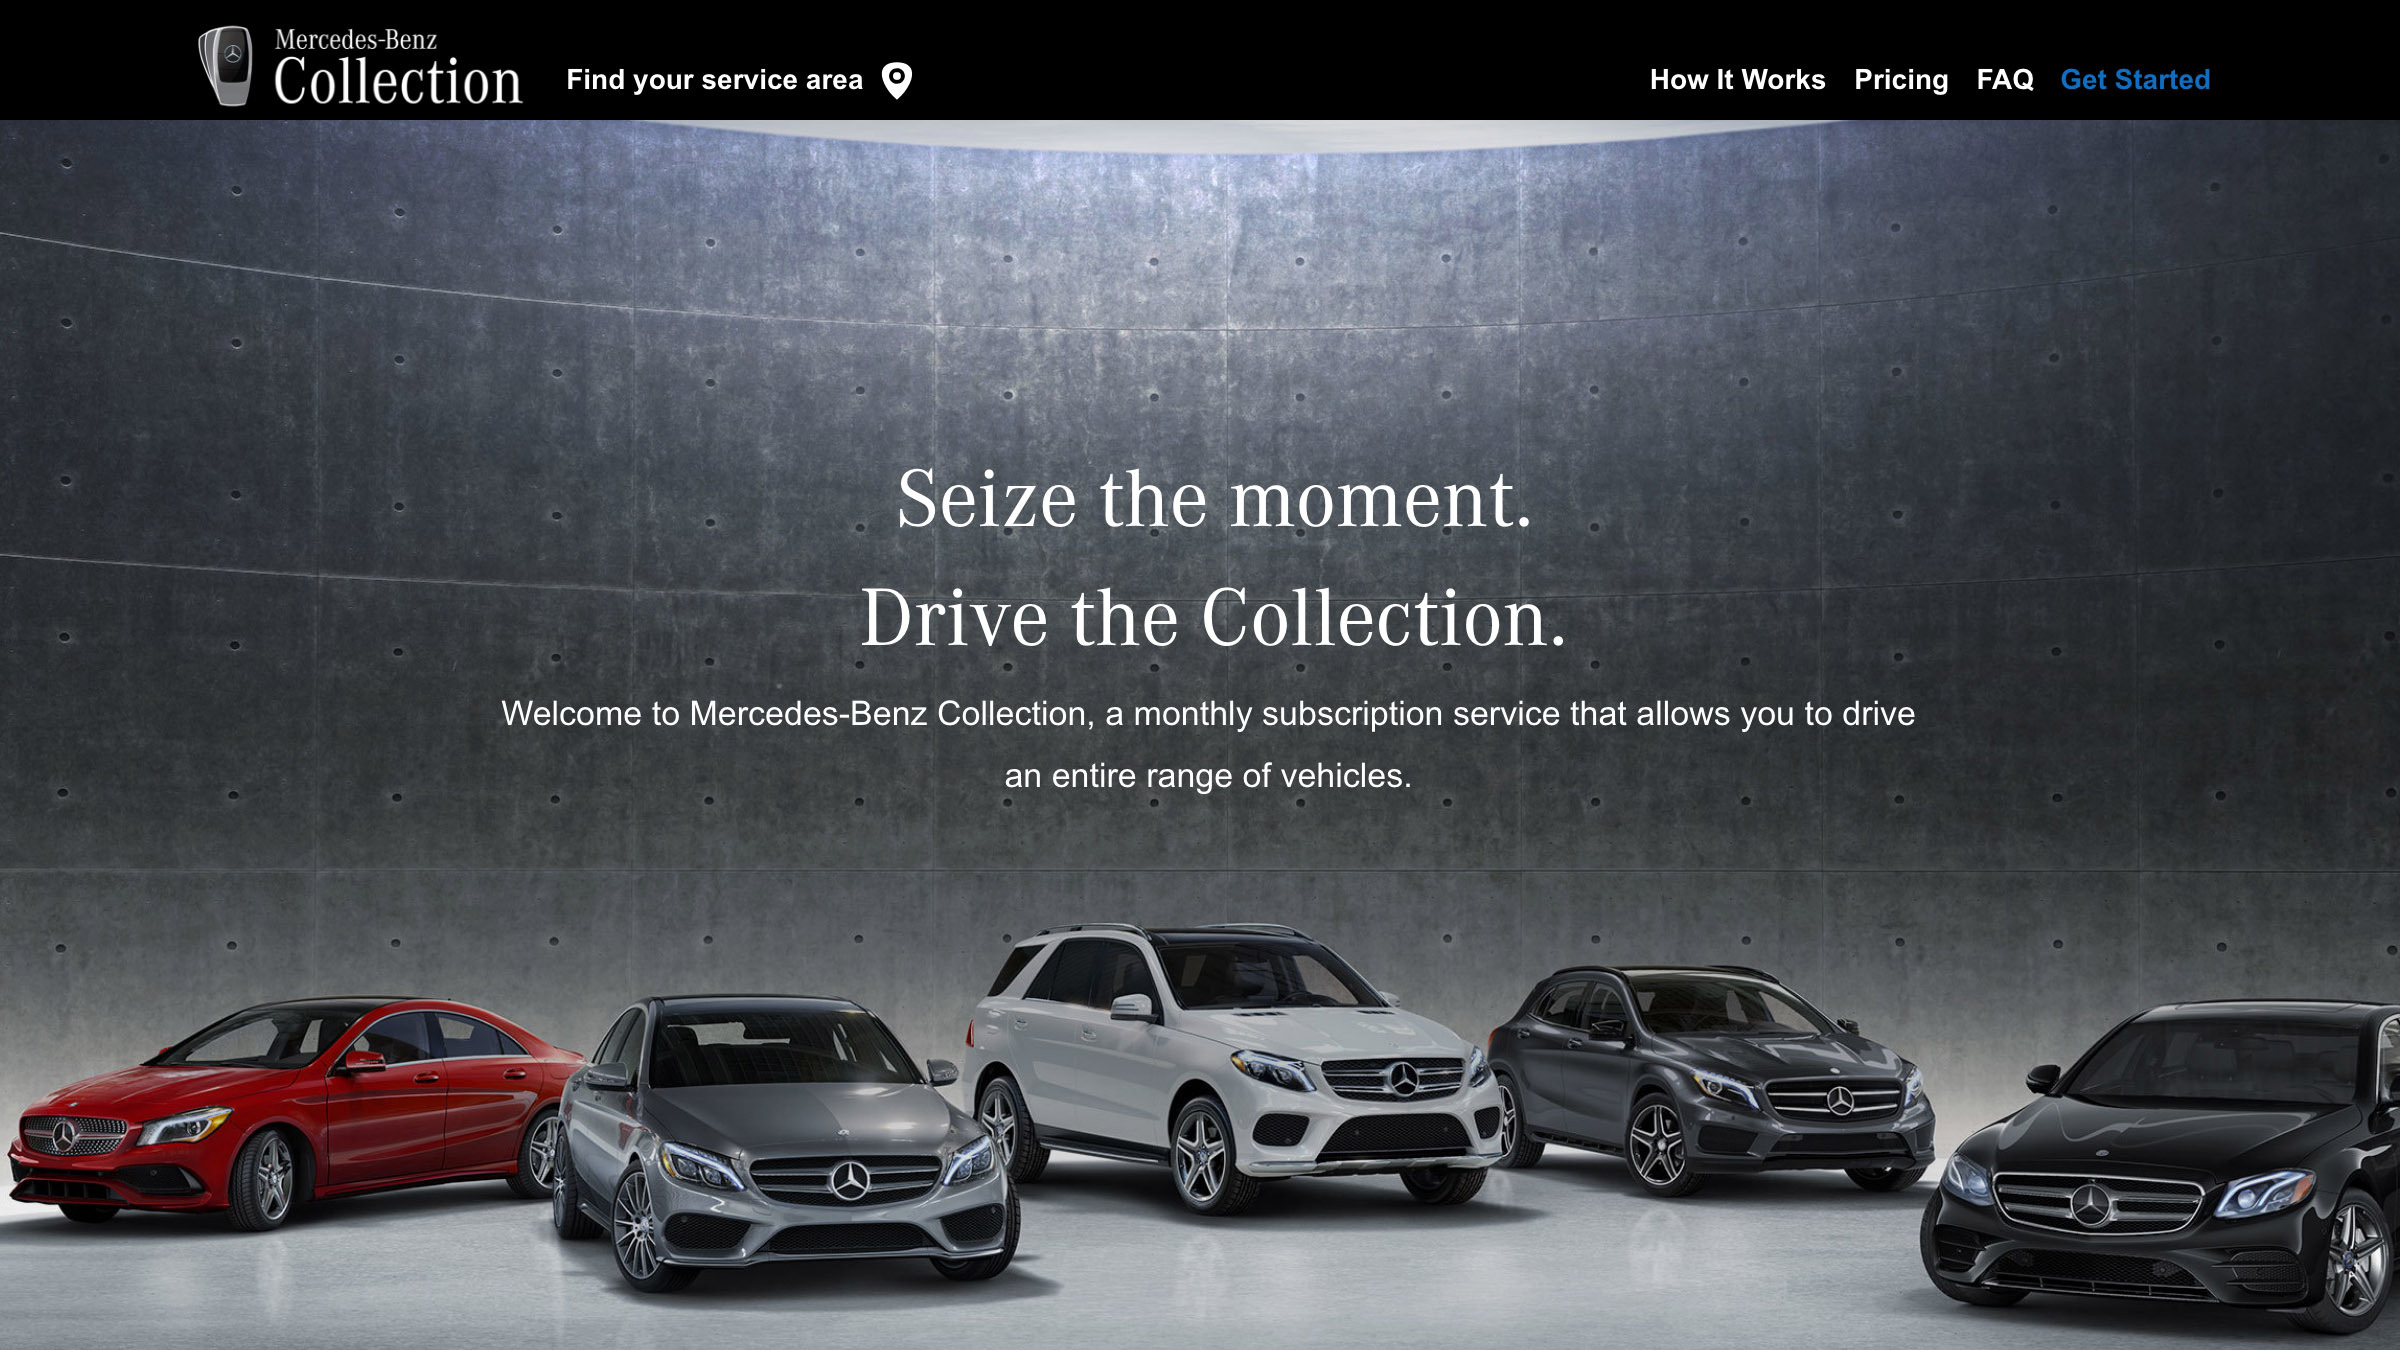 Mercedes benz launches broadest luxury vehicle subscription plan in mercedes benz usa donna boland 770 705 2009 or mercedes benz financial services mary beth halprin 248 220 9346 thecheapjerseys Gallery